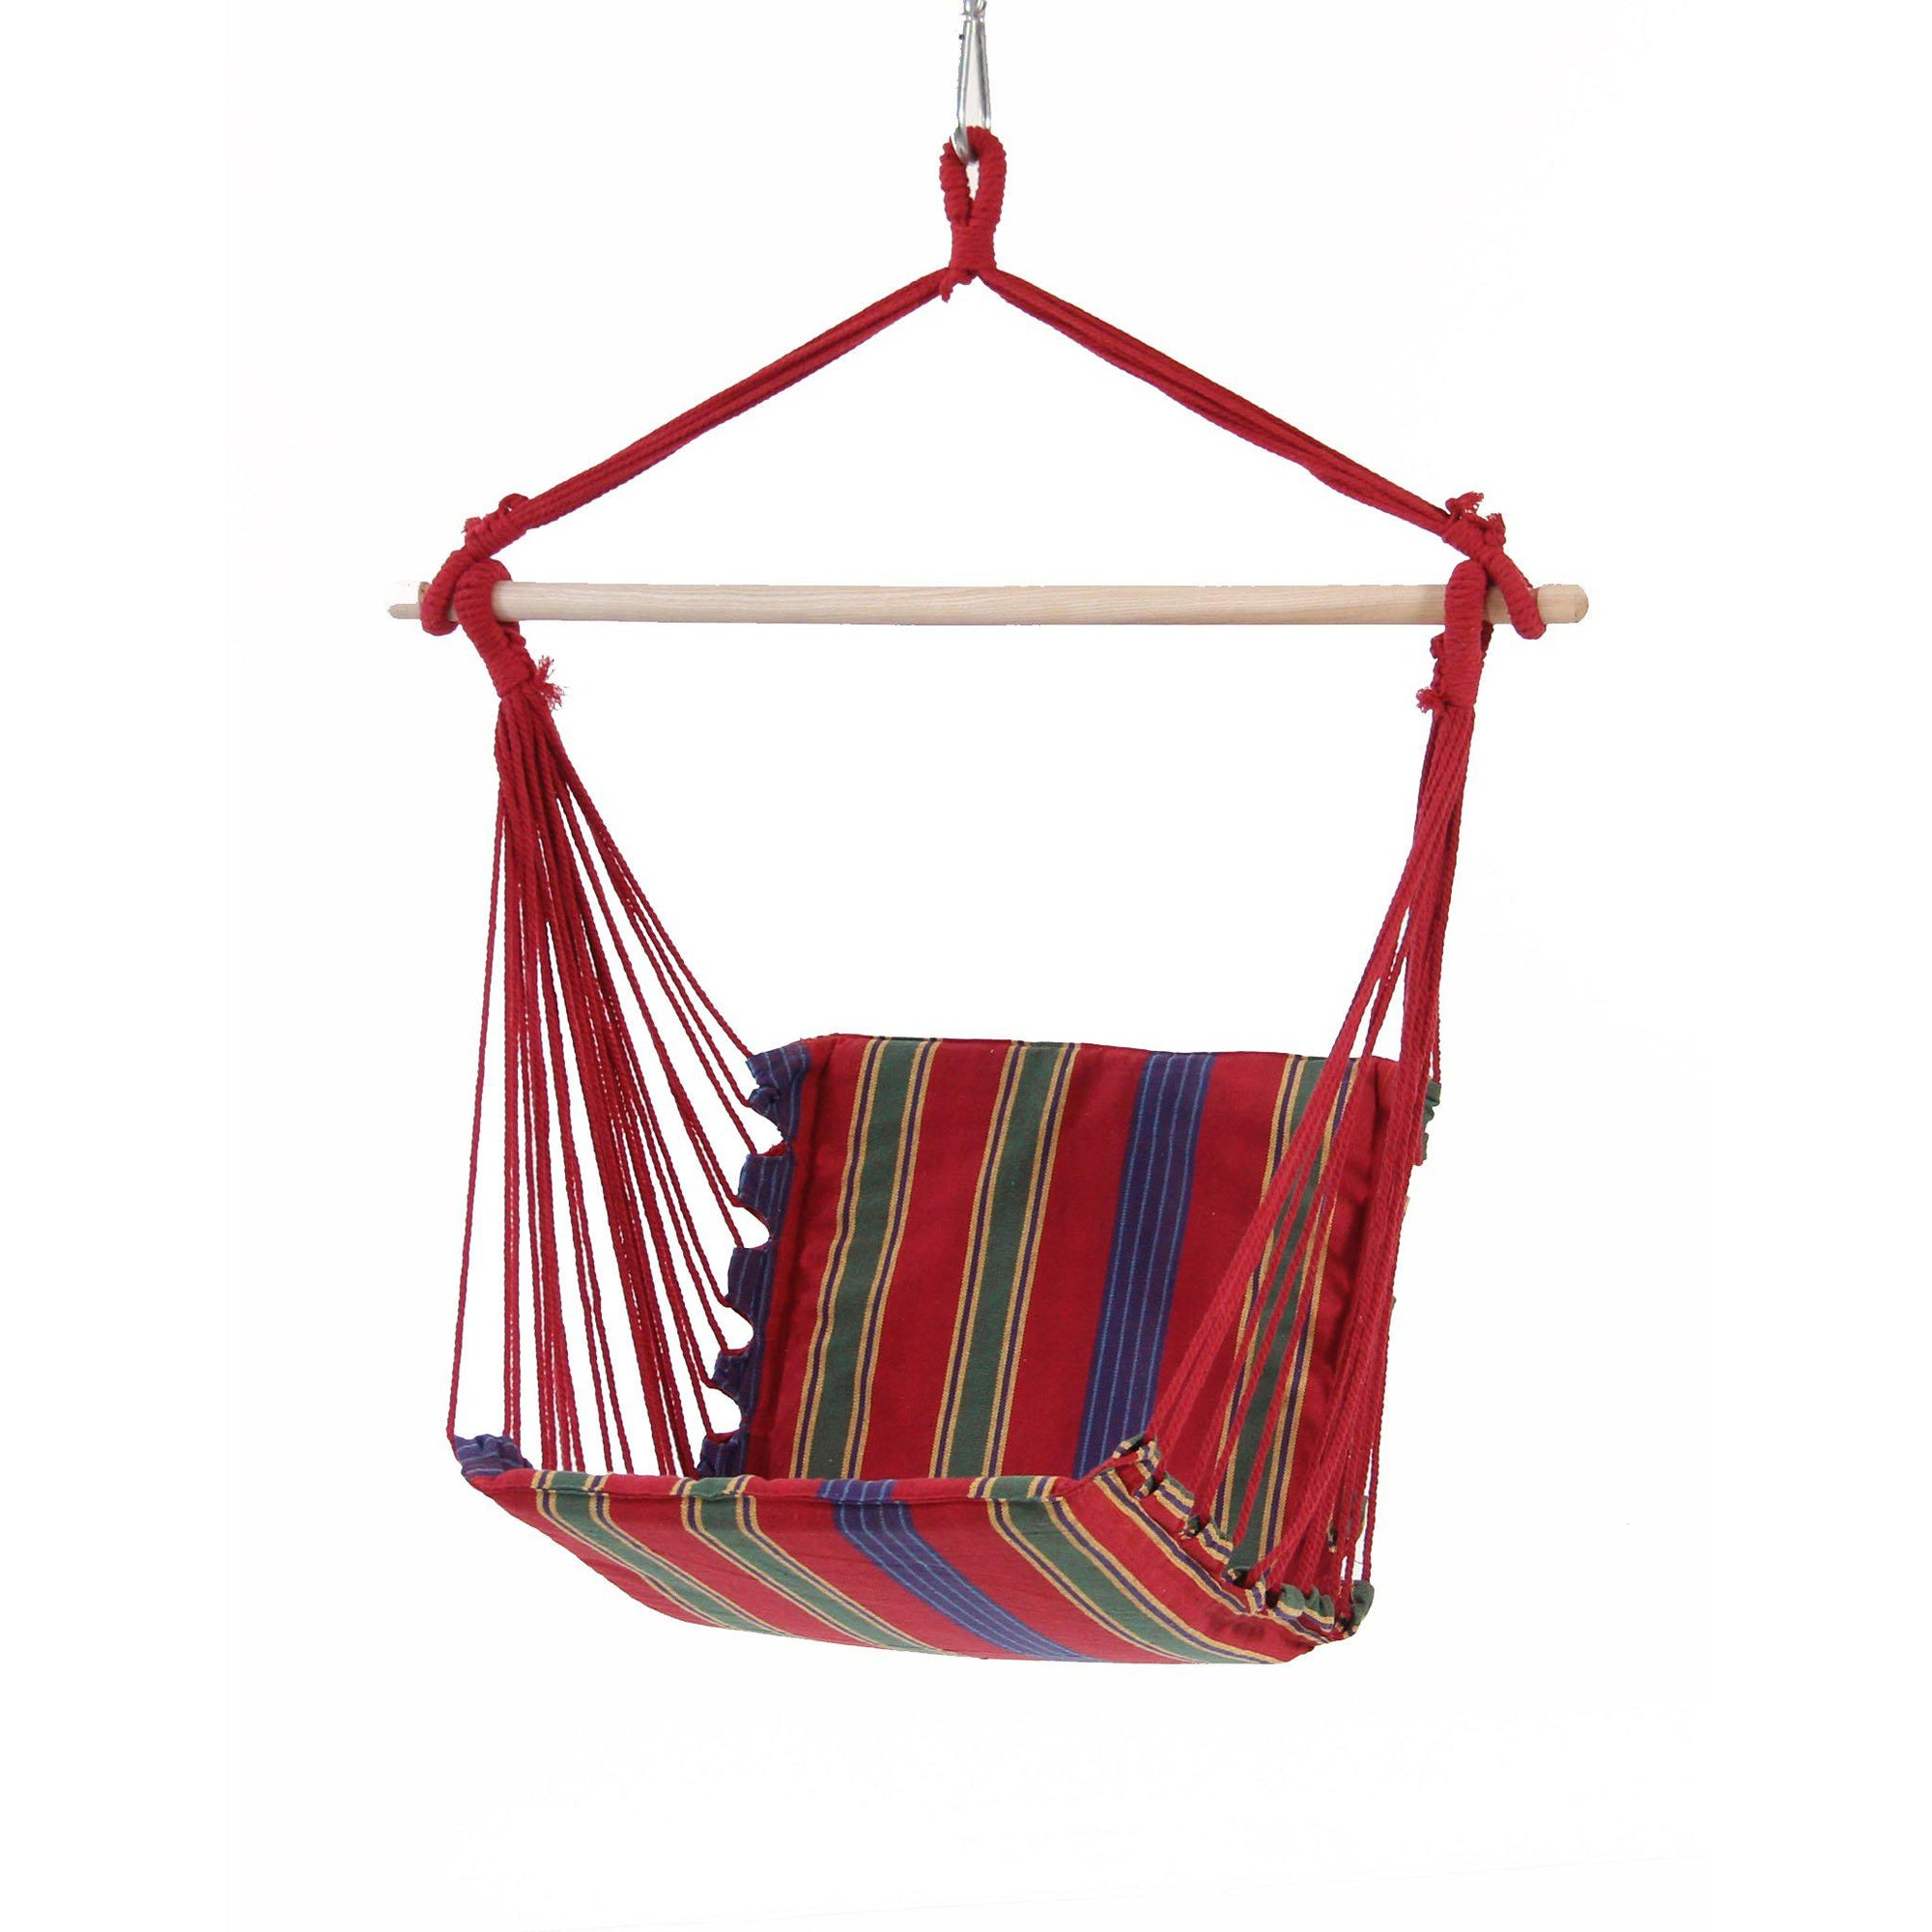 Belize Hanging Chair in red